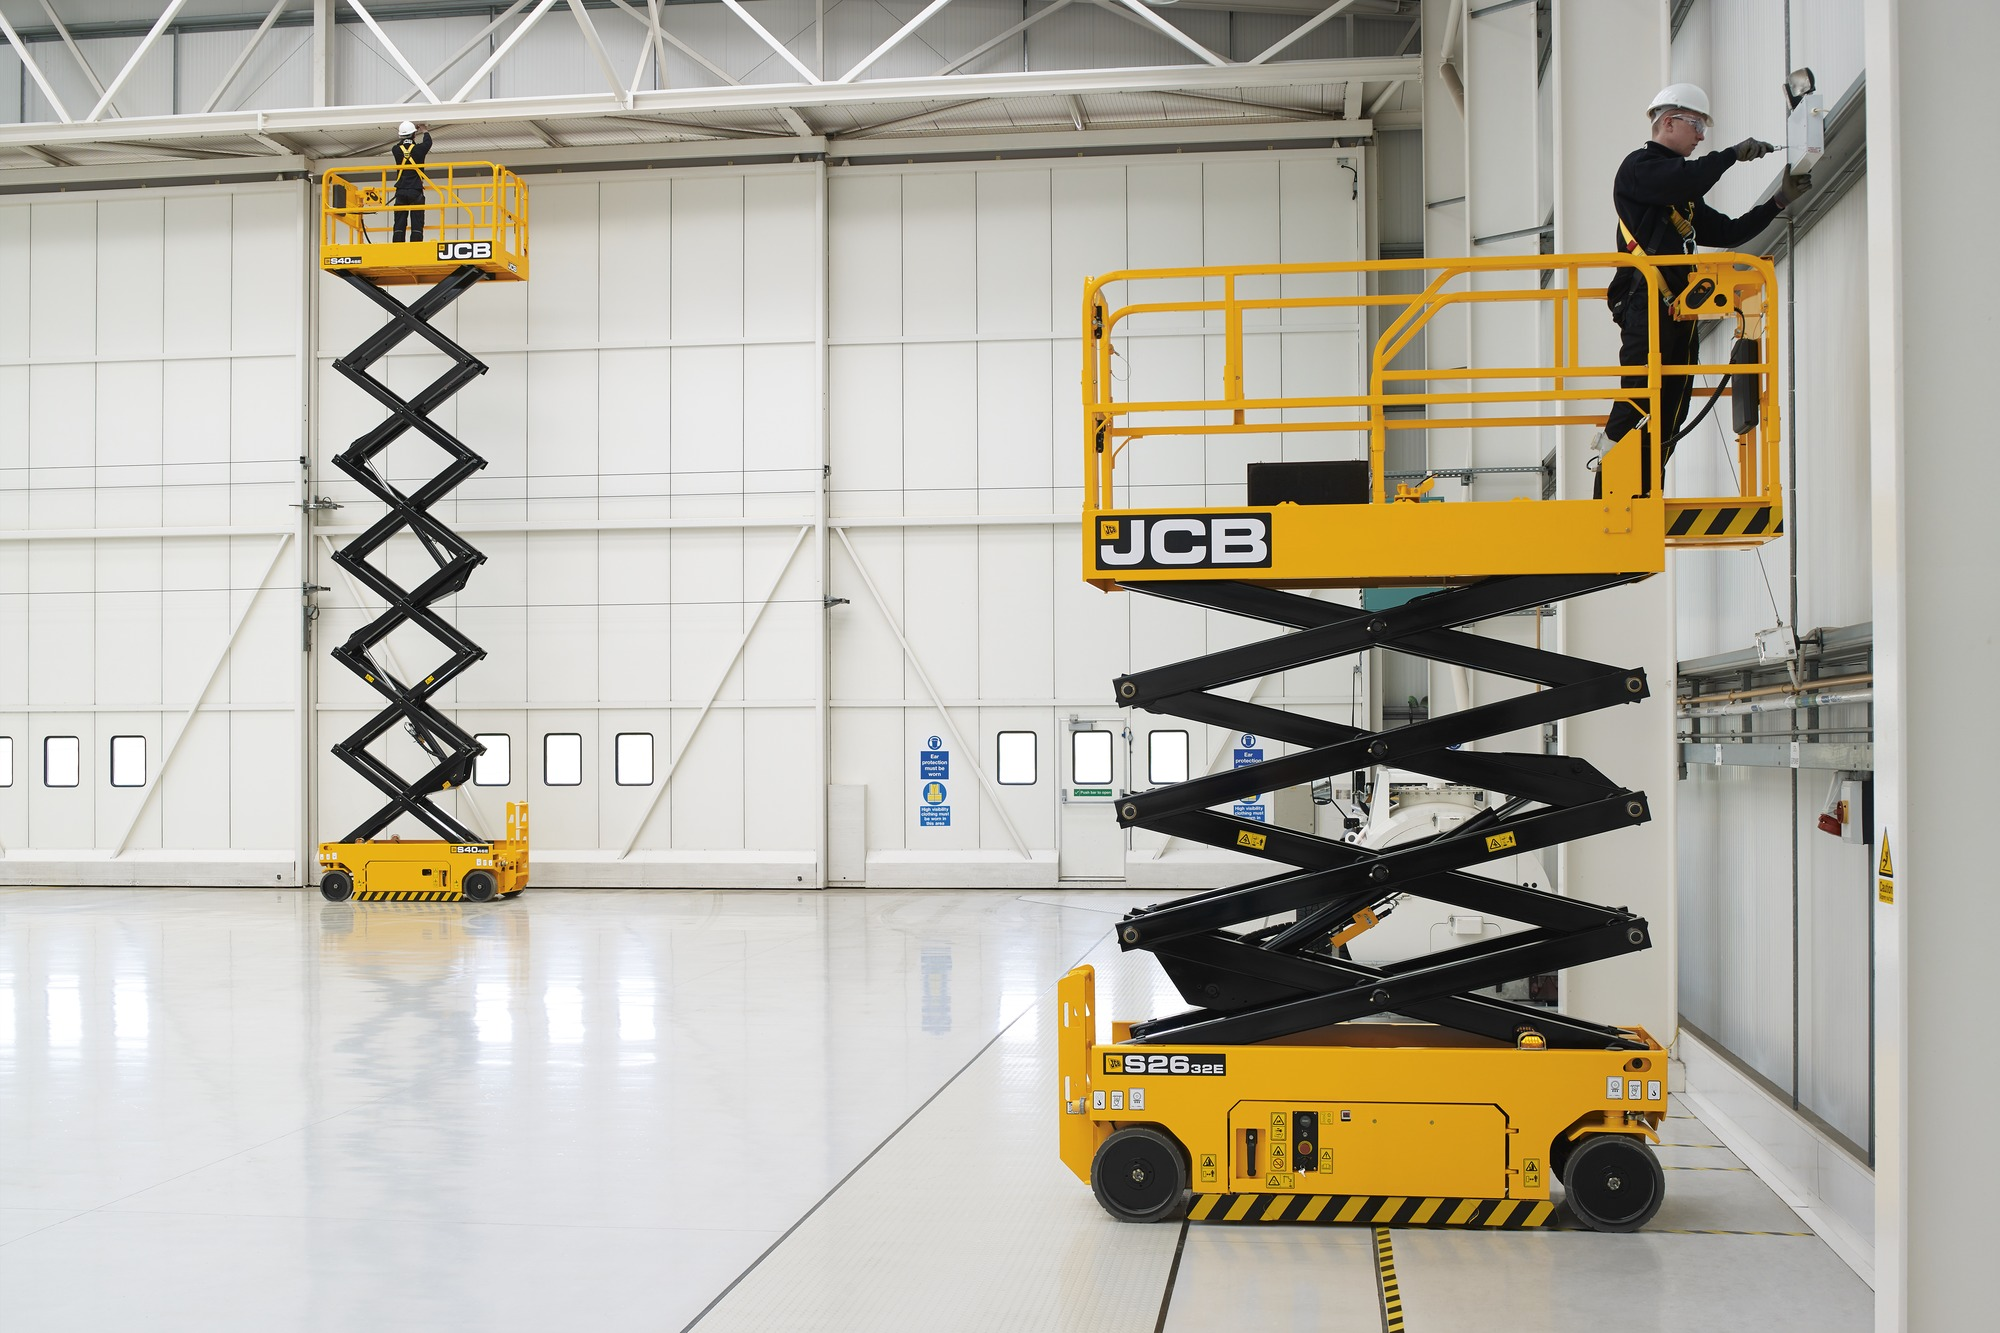 S2632e 26 Foot Jcb Electric Scissor Lift Jcb Com